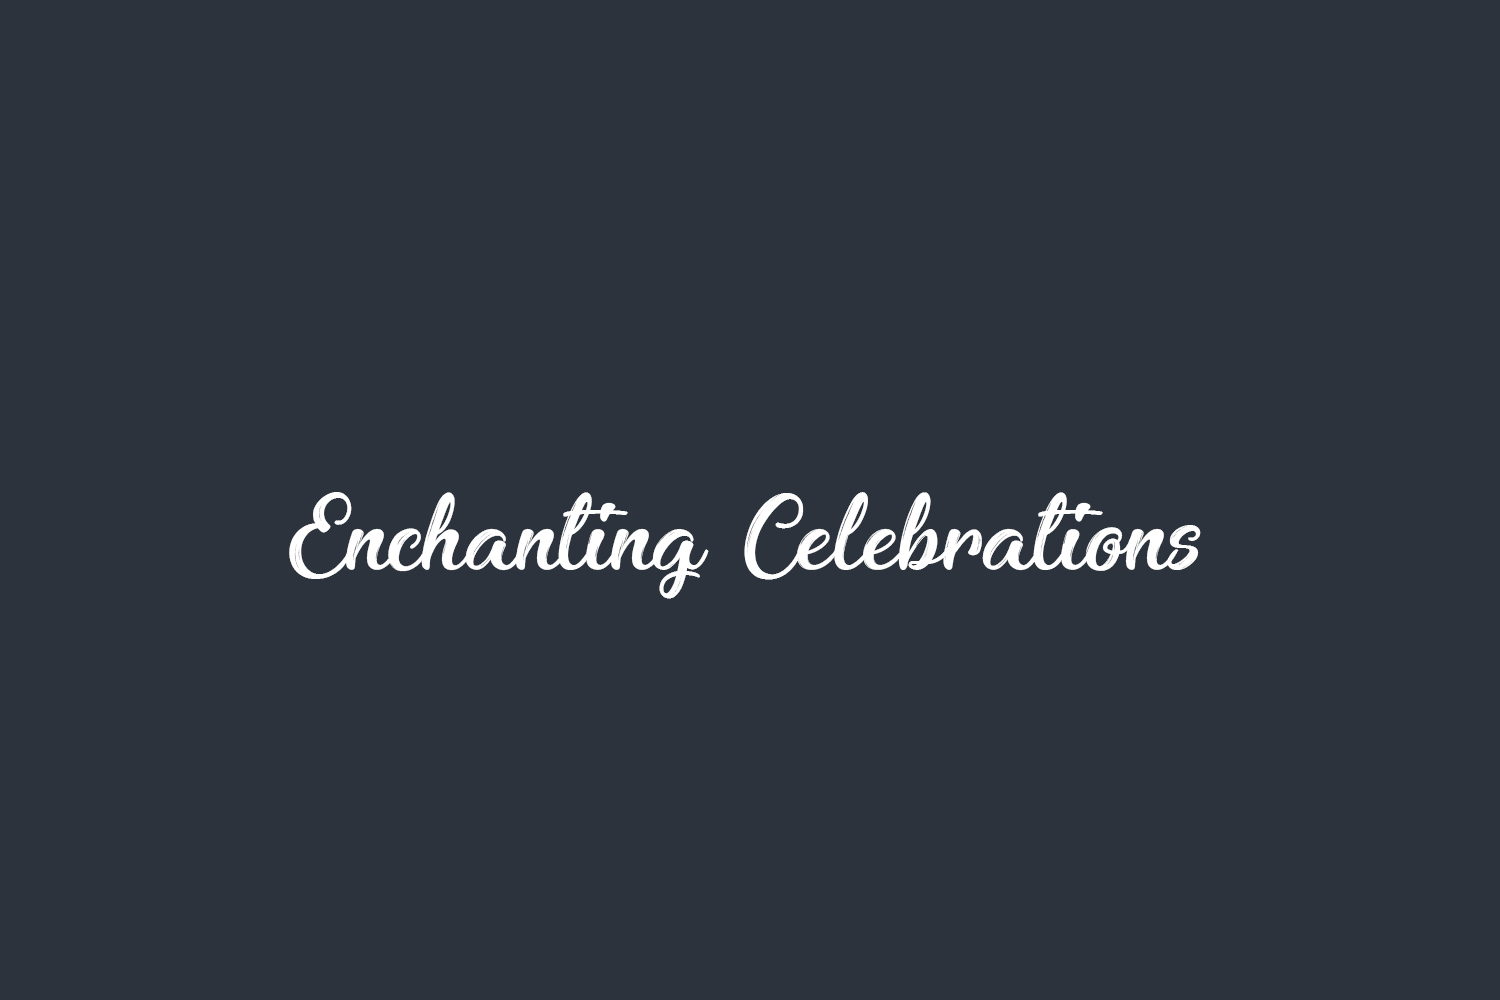 Enchanting Celebrations Free Font